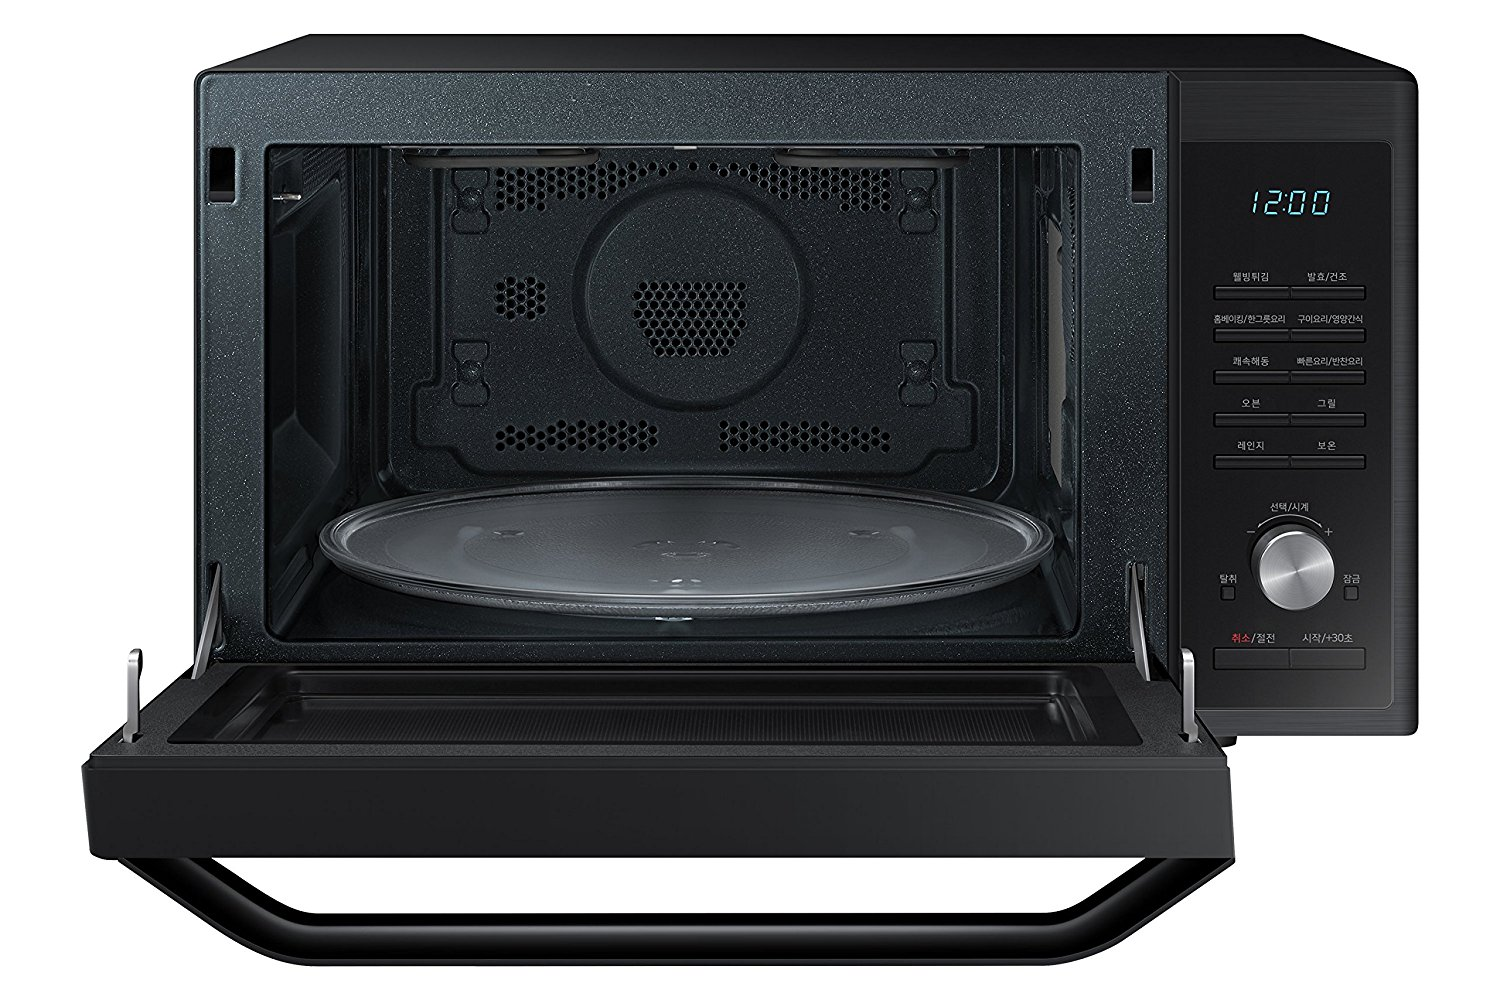 32 L convection samsung microwave